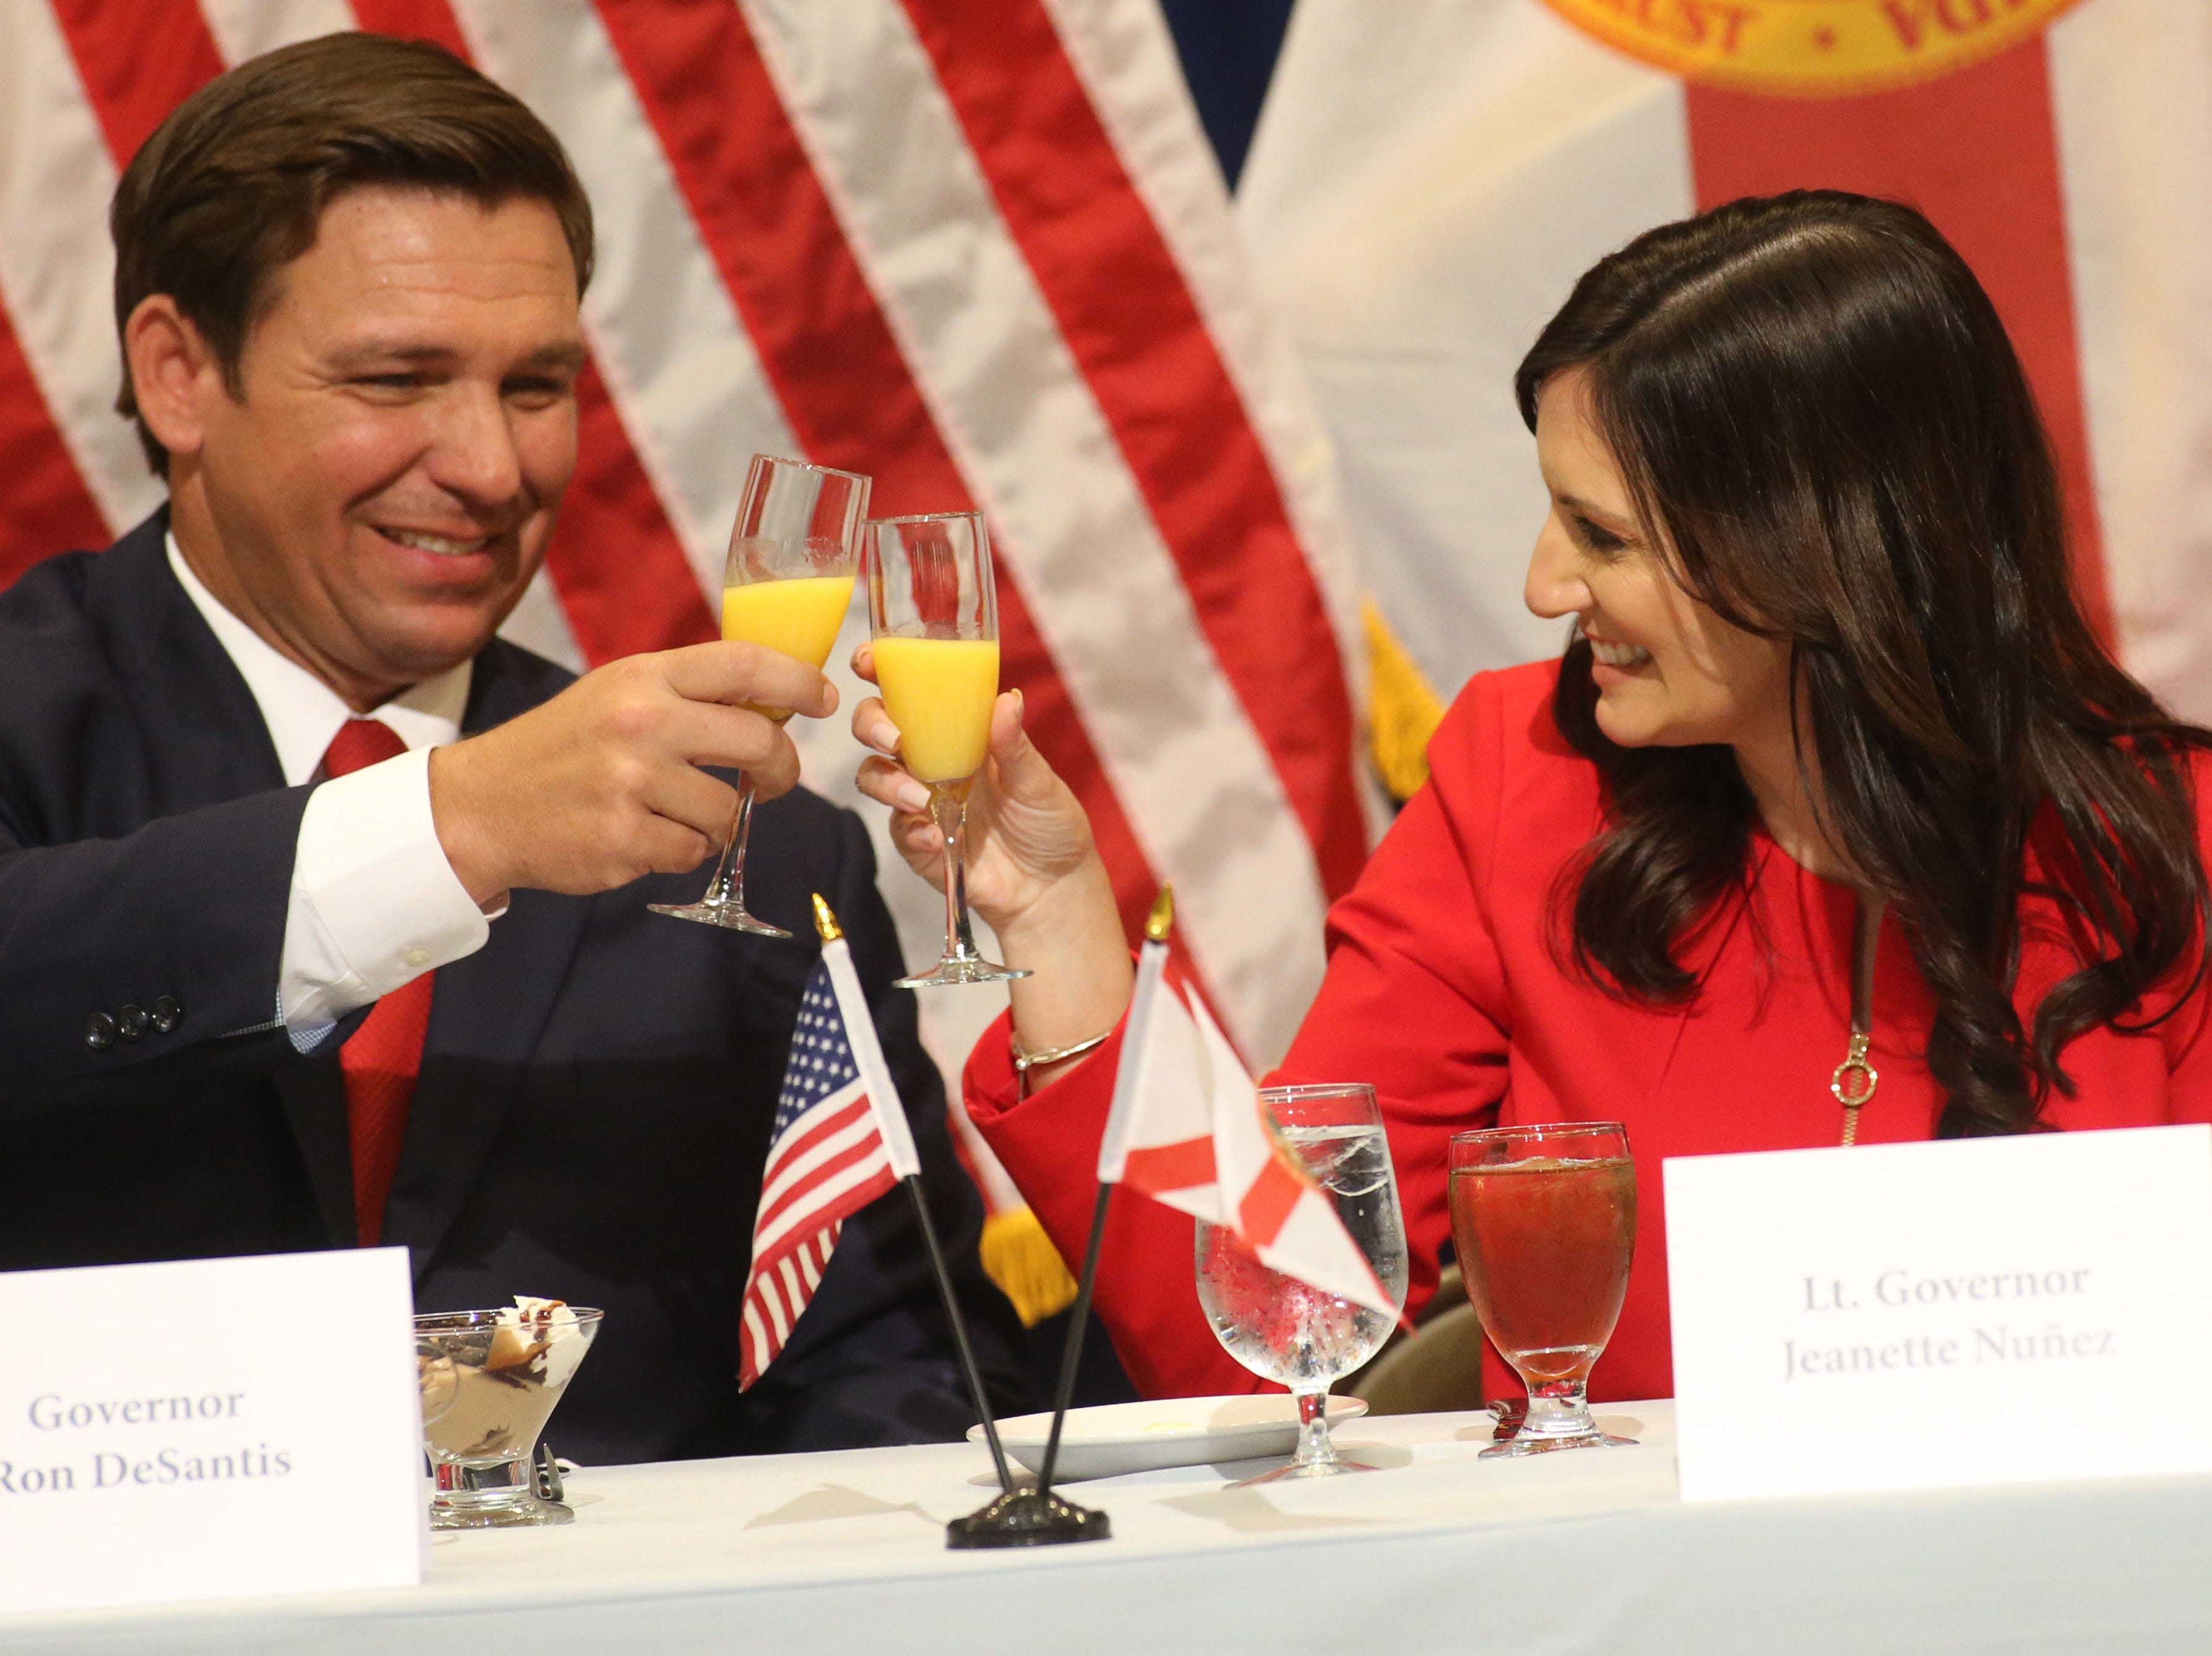 For the first time in Inaugural history, Gov. Ron DeSantis addresses FloridaÕs Legislative leaders and Cabinet officials. DeSantis discusses his plans to work with our stateÕs elected leaders to achieve a Bold Vision for a Brighter Future, Tuesday, Jan. 8, 2019. Gov. Ron DeSantis, left, toasts with Lt. Gov. Jeanette Nunez.